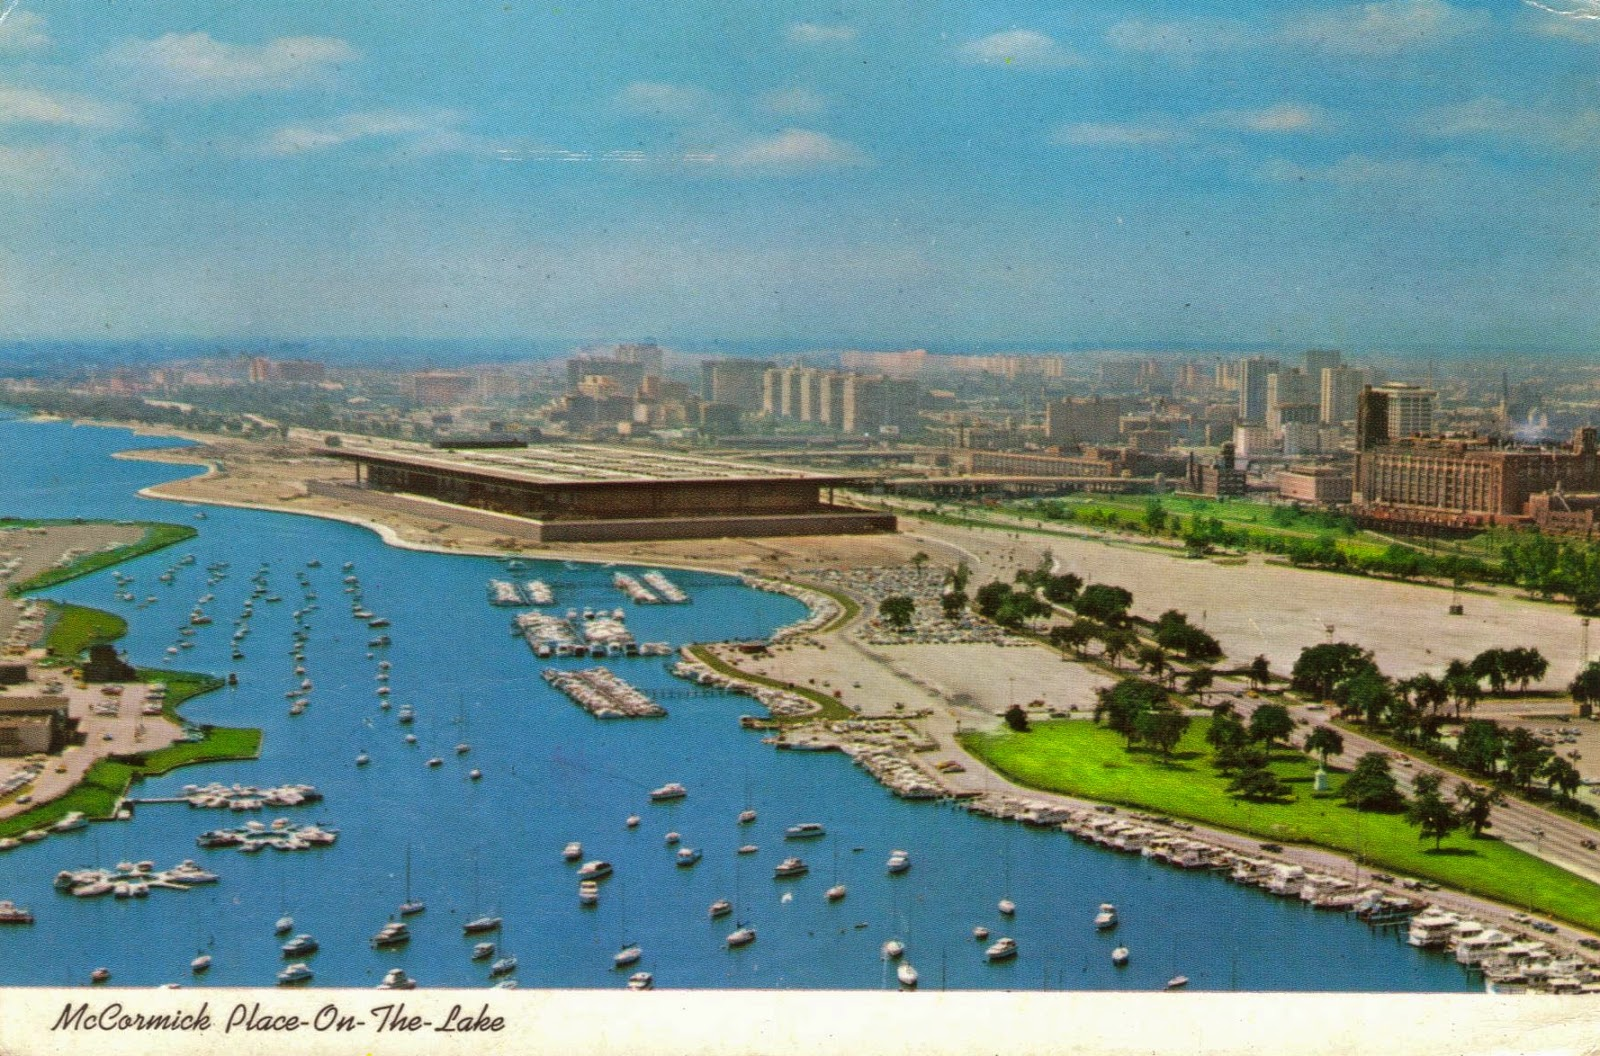 McCormick Place-On-The-Lake, Chicago